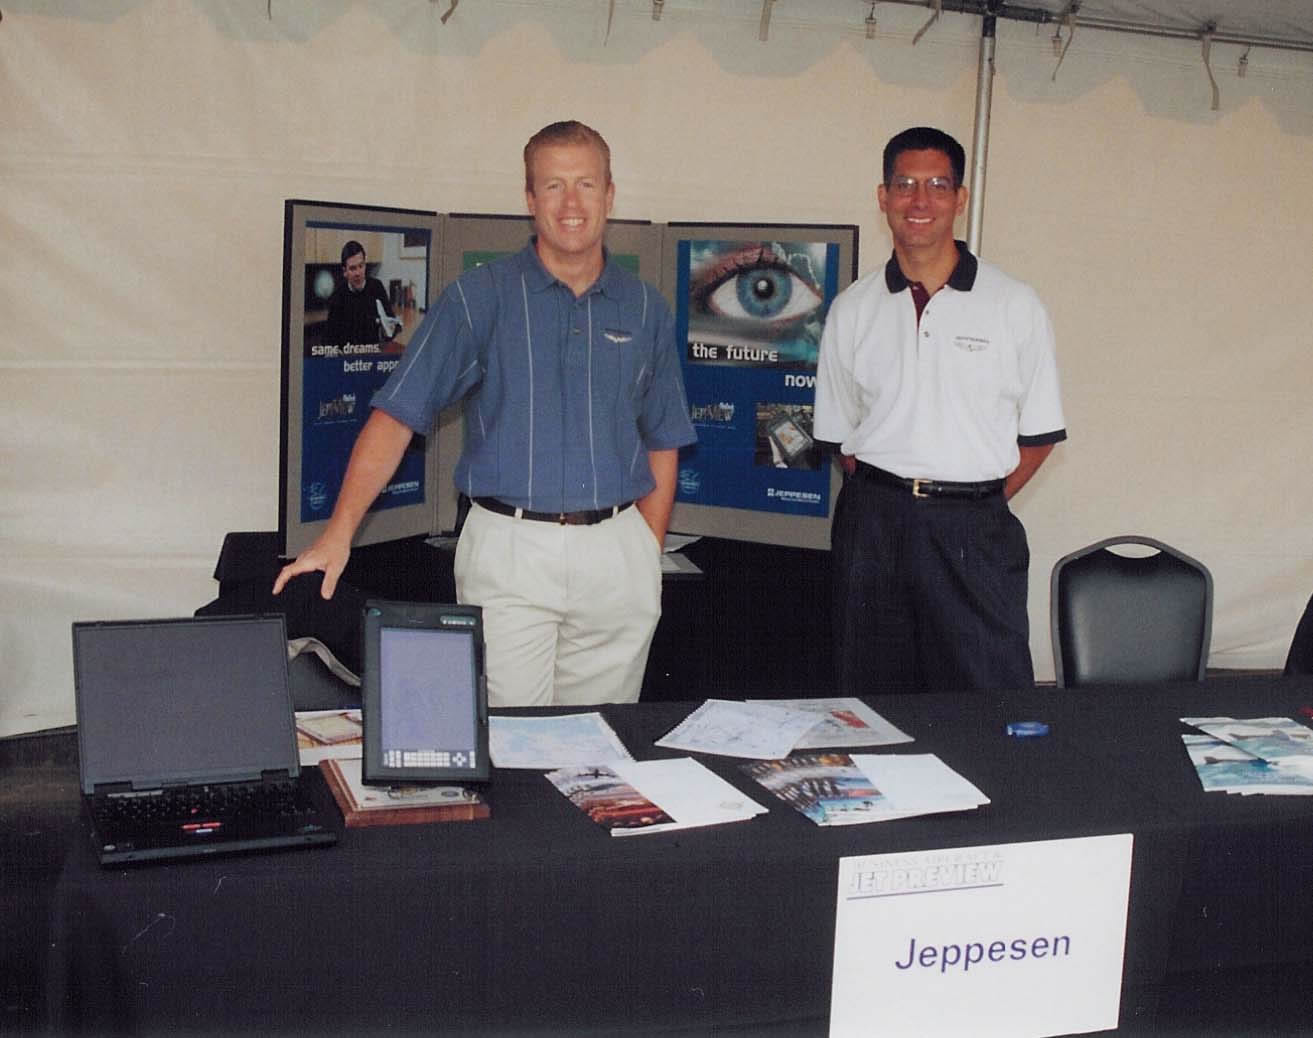 jeppesen past present and future part ii airport journals